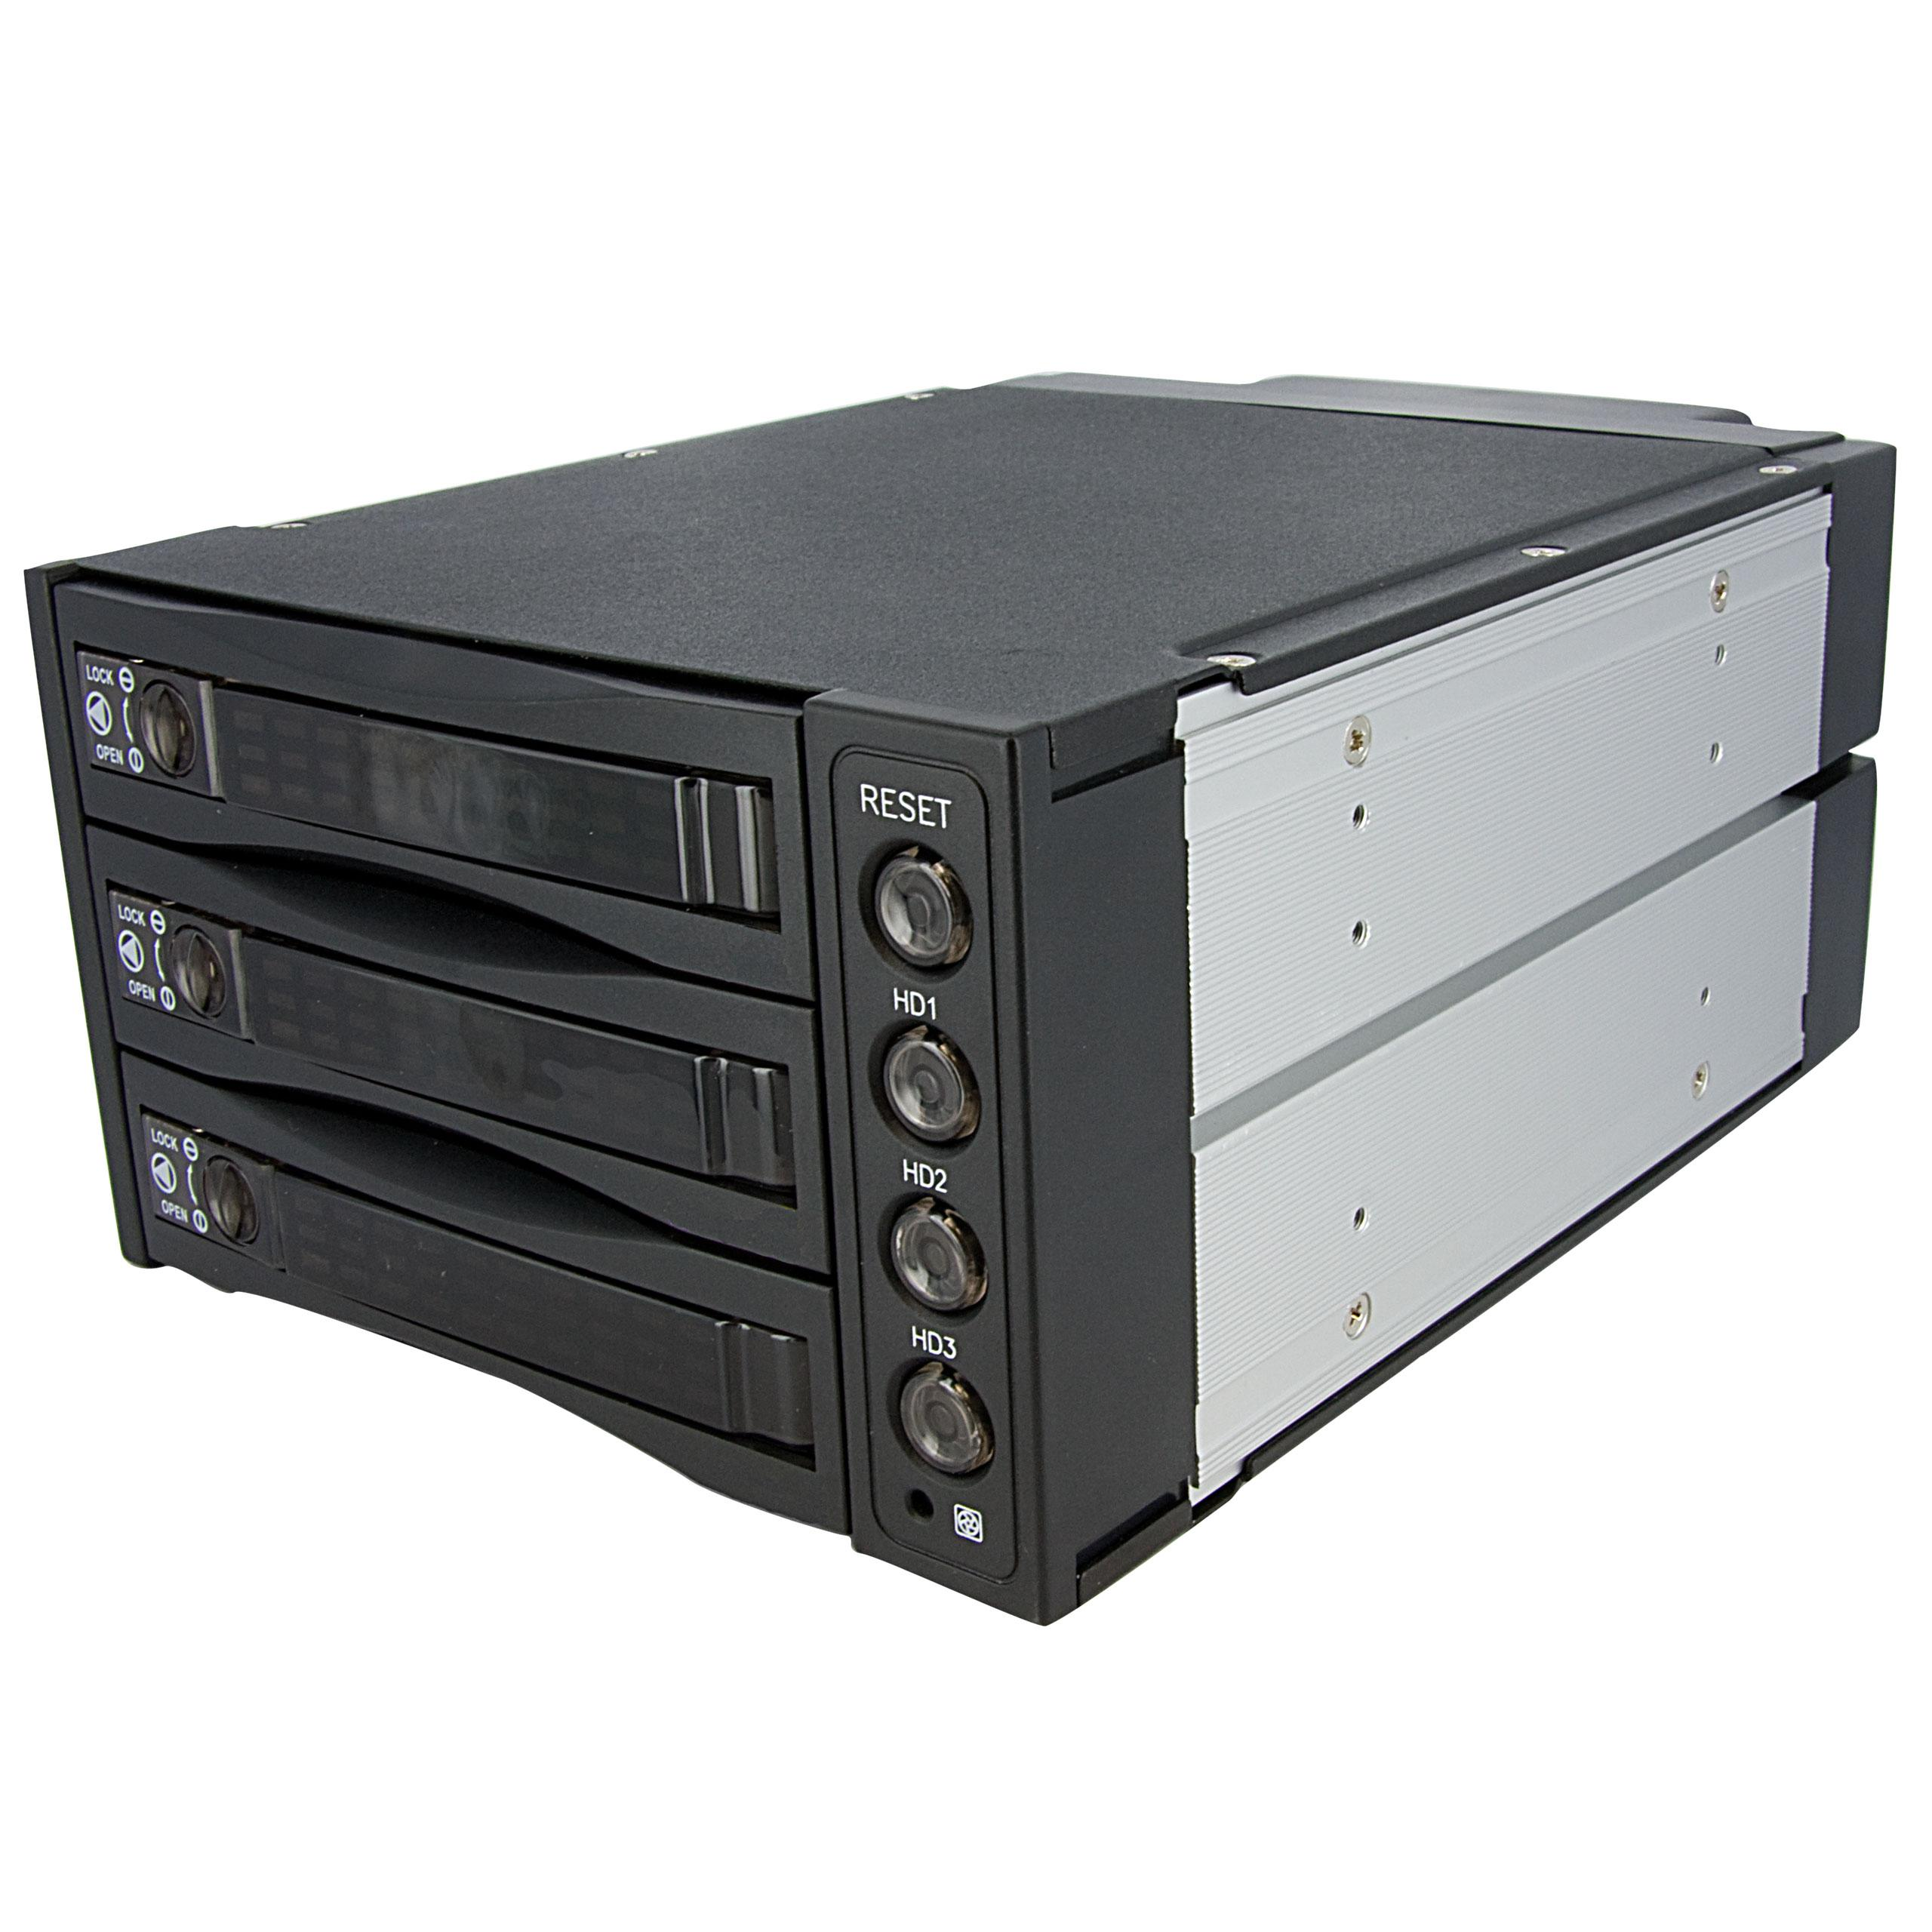 function usb docking bay duplicatorcloner sabrent hdd to ec hard drive ssd previous external product toaster main dual next sata station